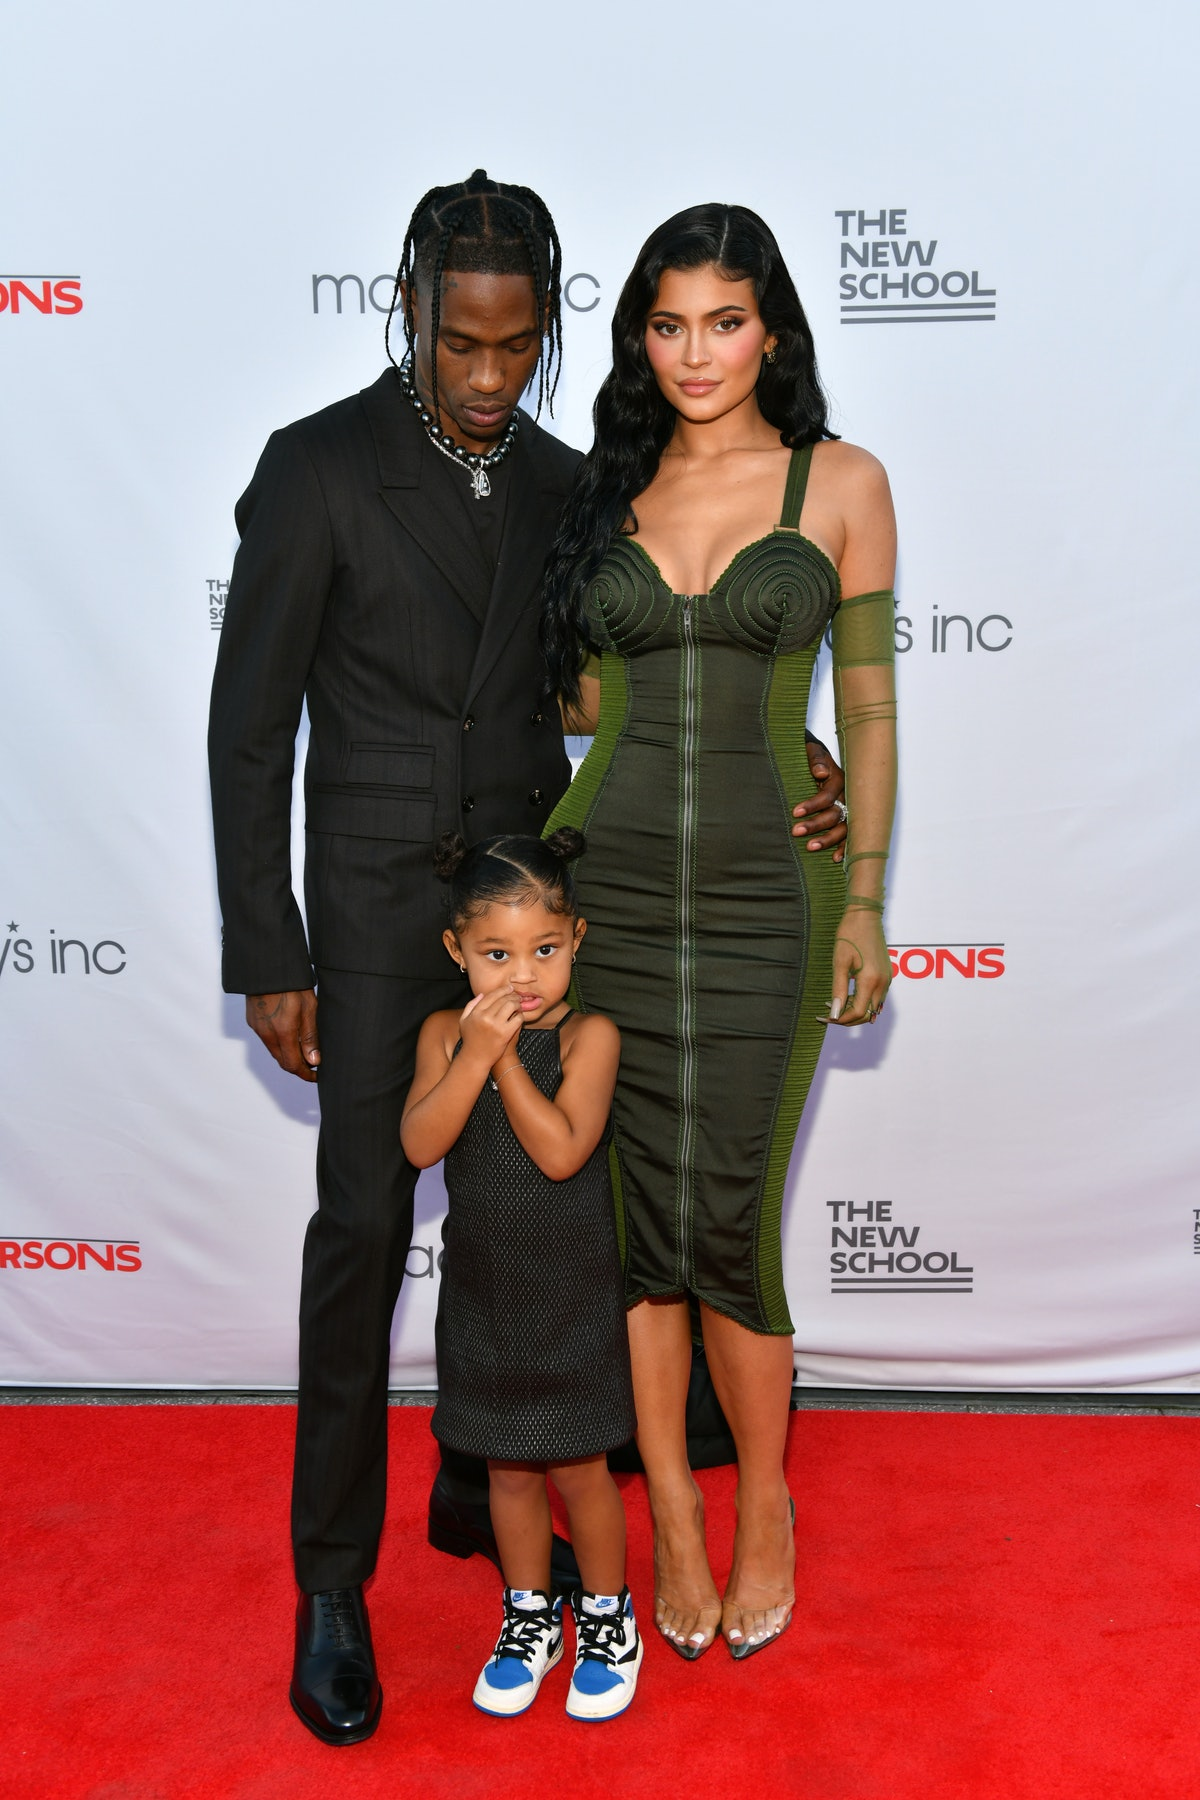 Travis Scott and Kylie Jenner with their daughter Stormi Webster at the 2021 Parsons benefit